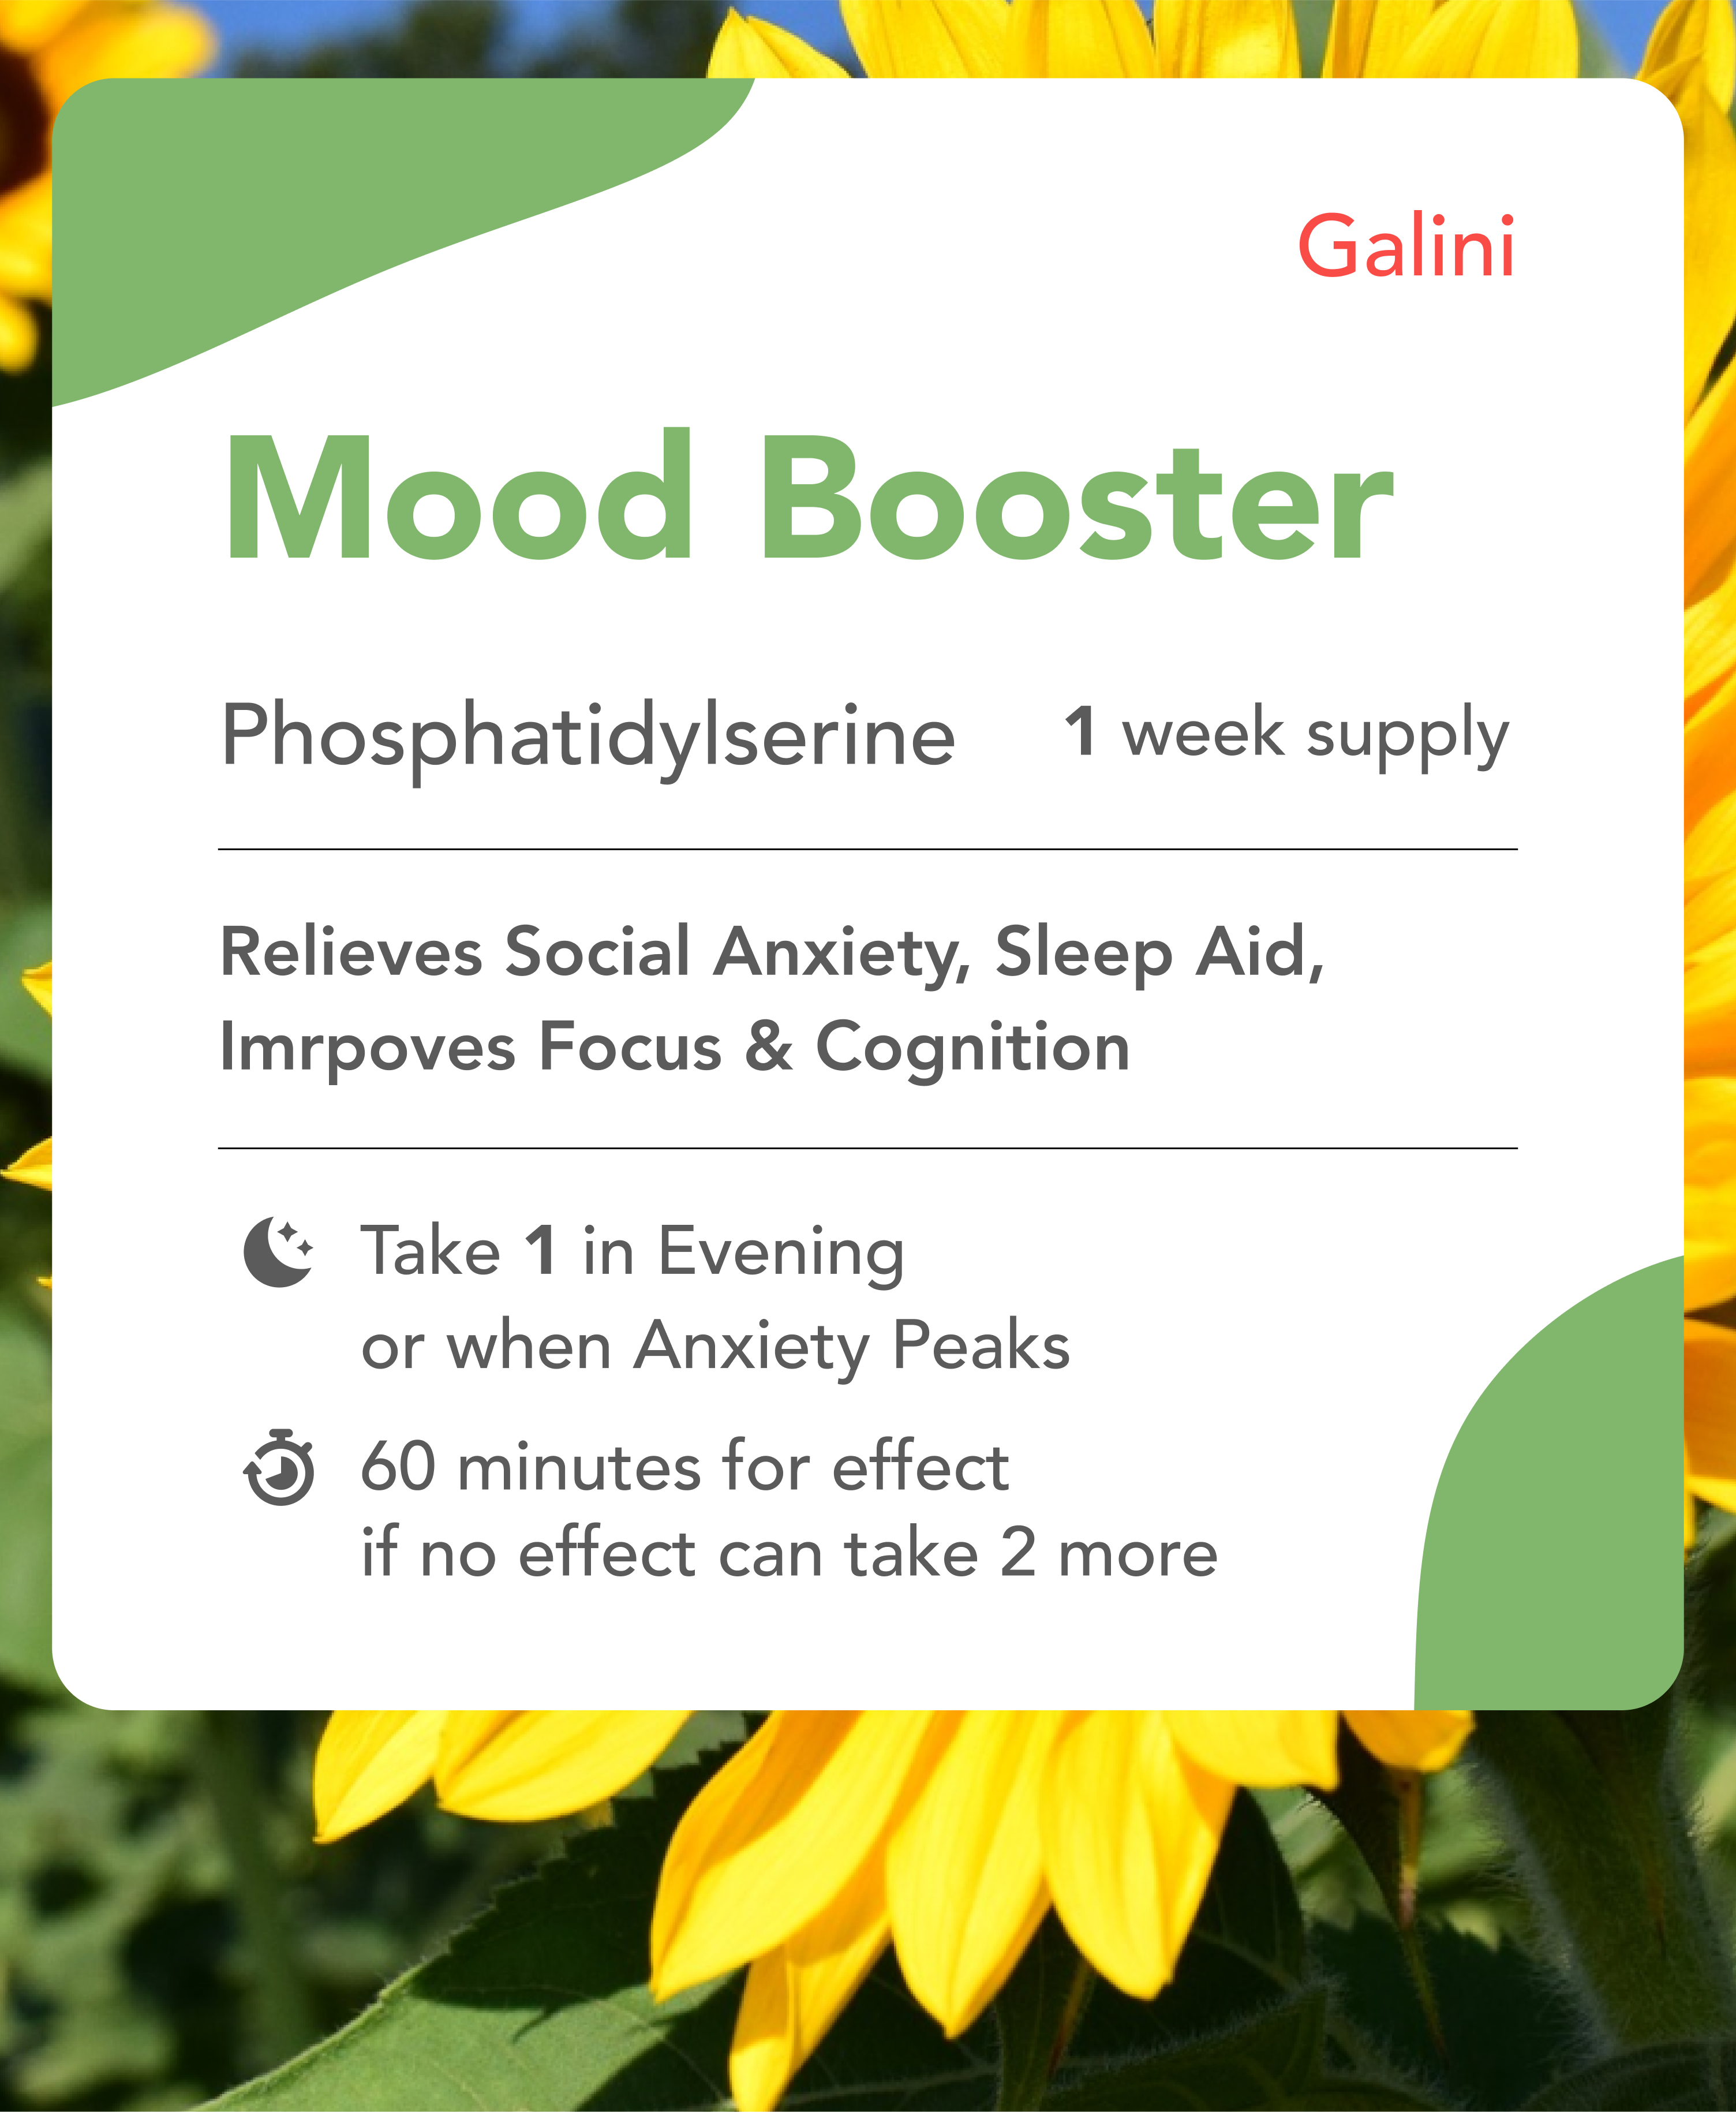 Mood booster supplement containing Phosphatidylserine with nature background